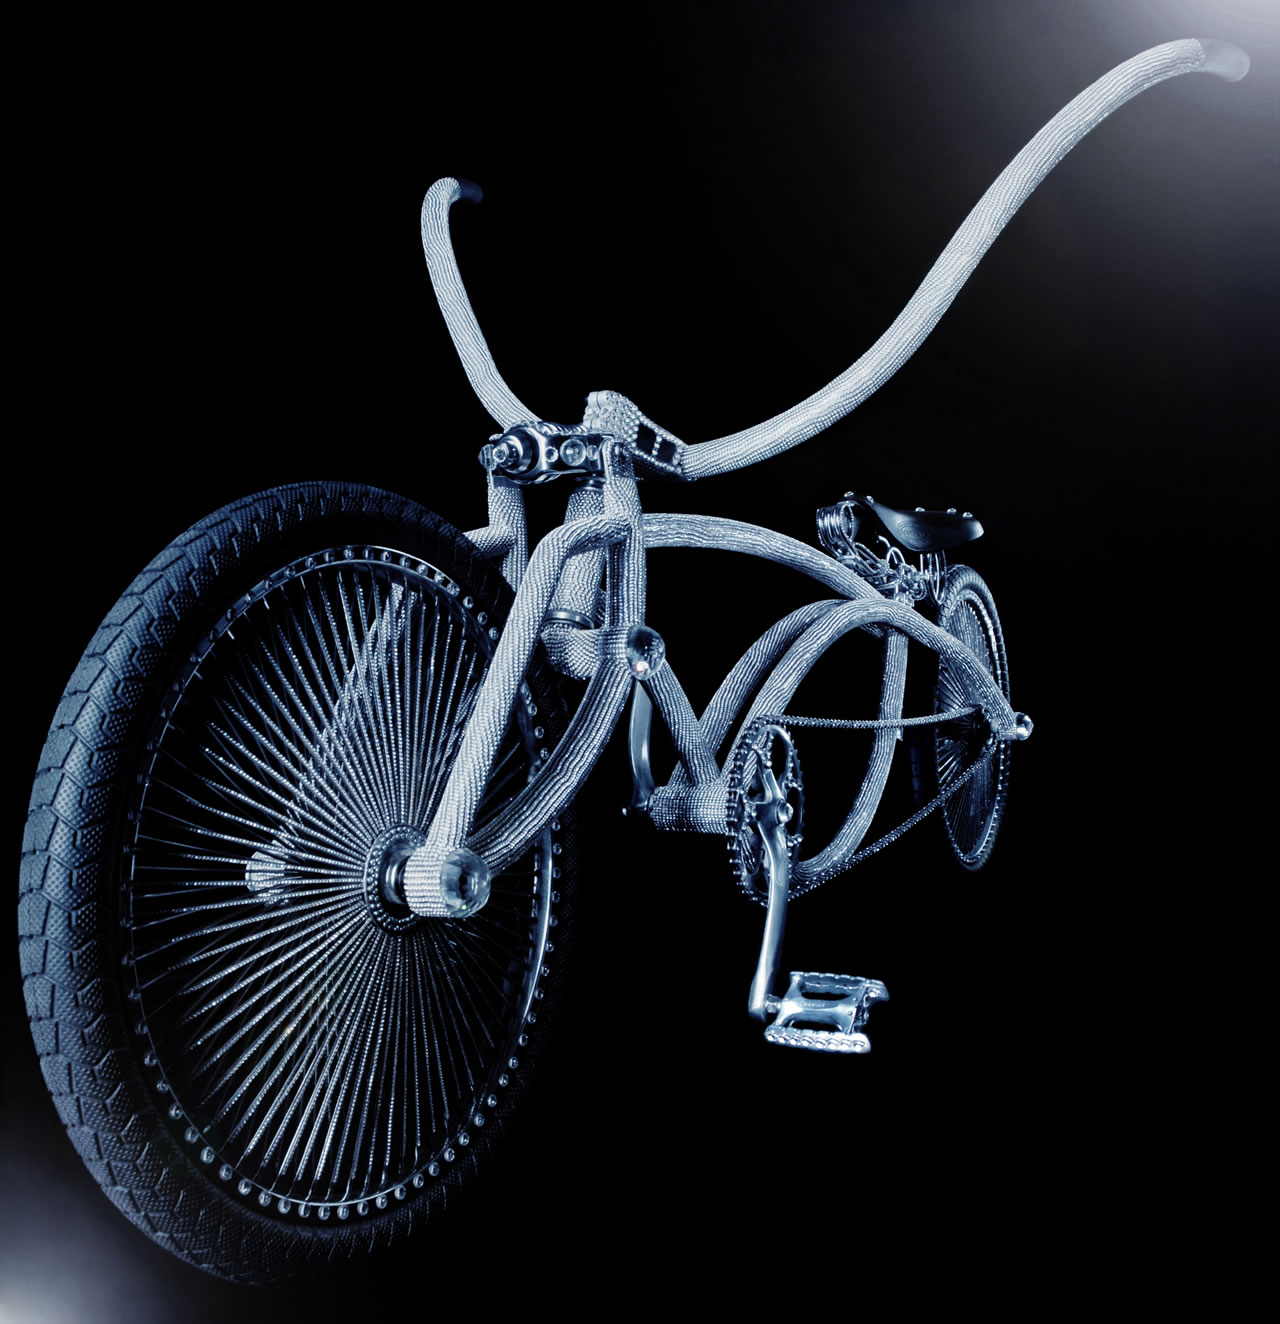 swarovski lowrider bike by ben wilson design. Black Bedroom Furniture Sets. Home Design Ideas